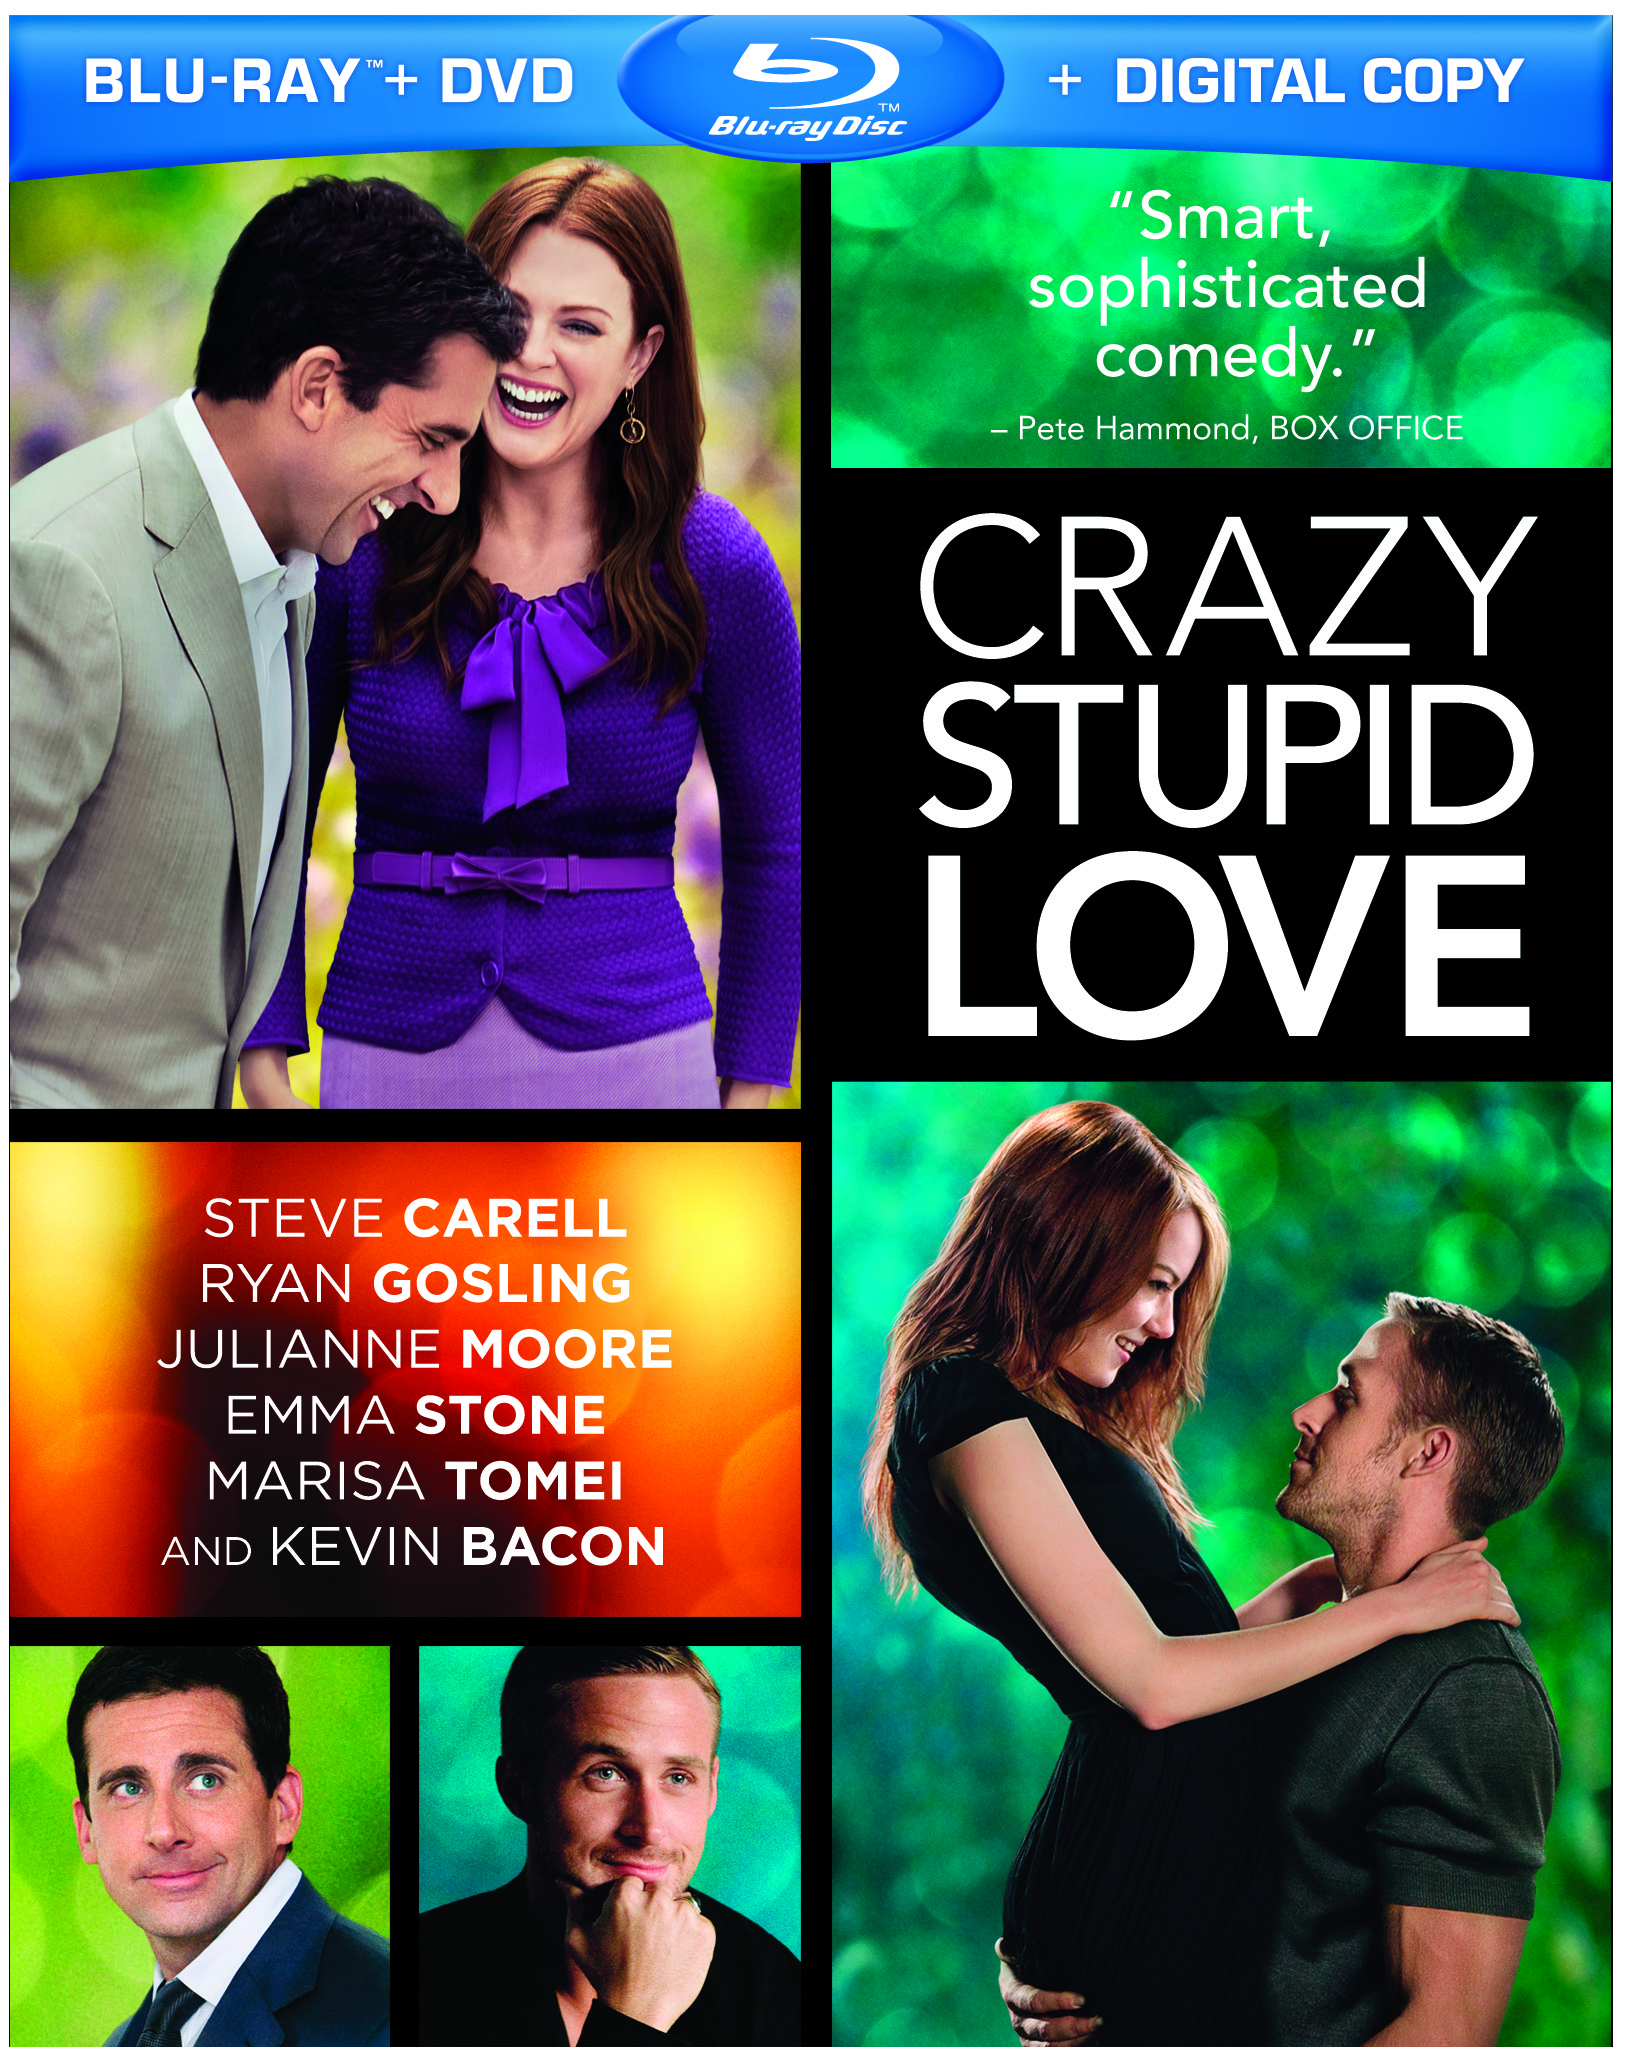 Crazy Stupid Love Blu-ray Box Art